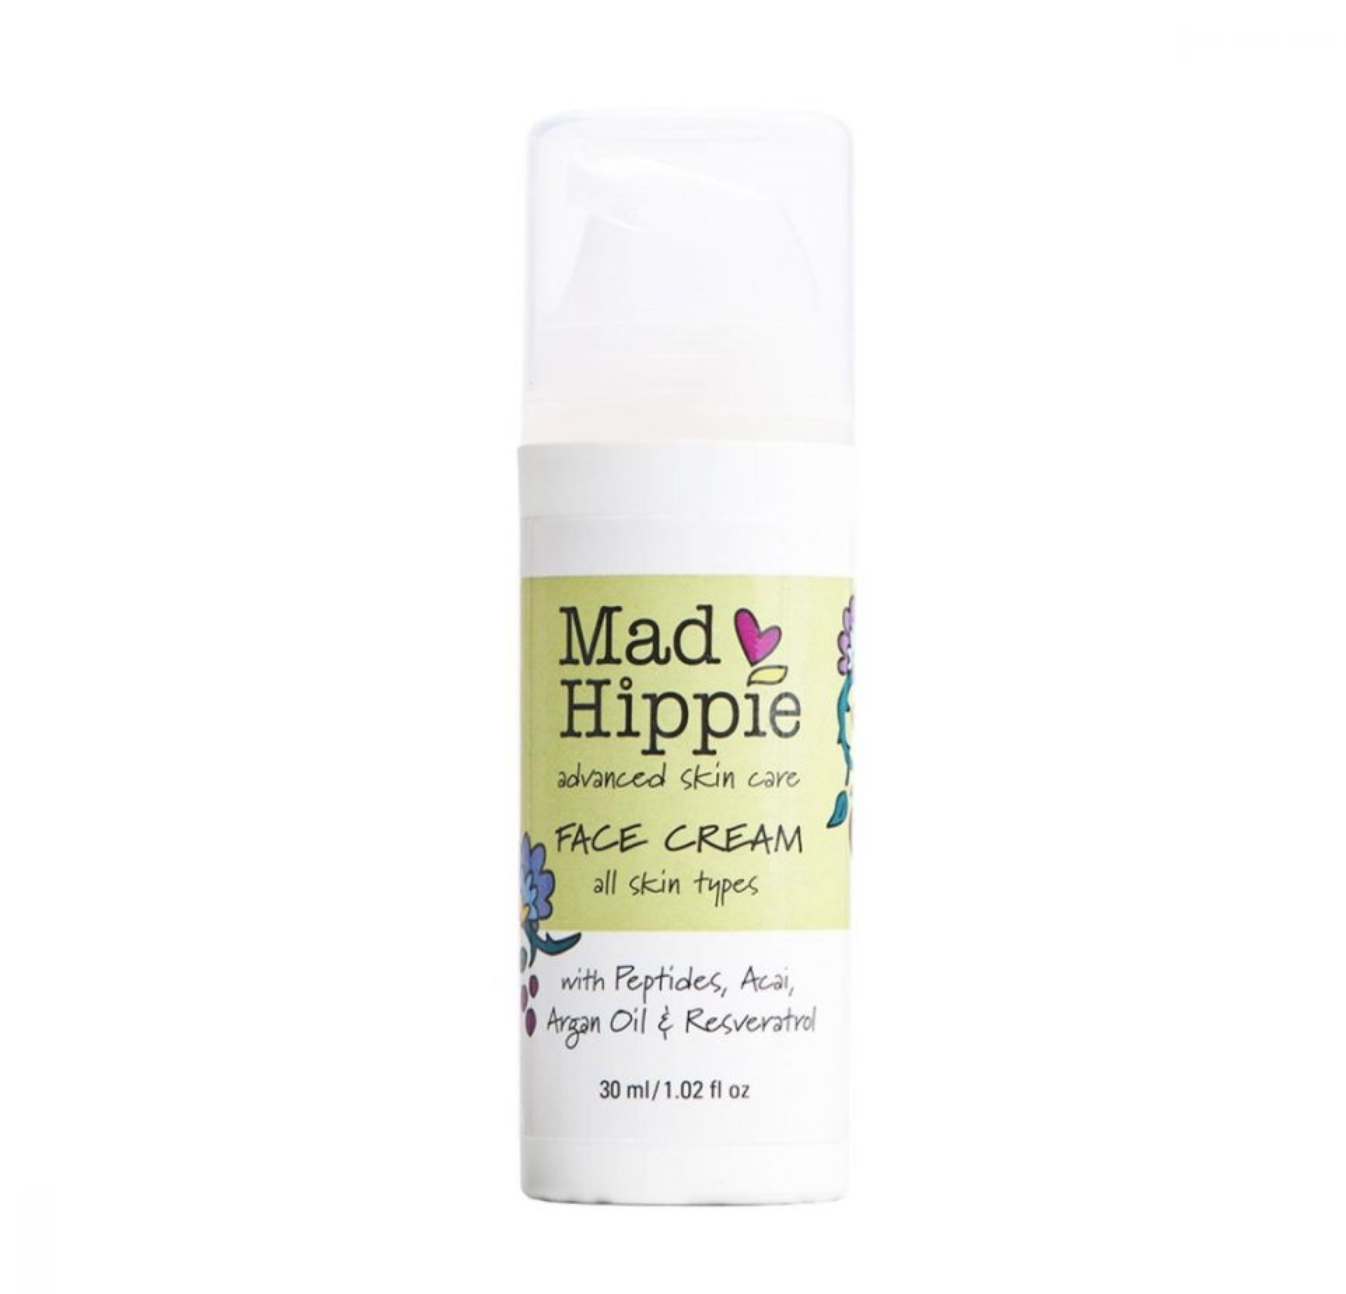 Mad Hippie-Face Cream